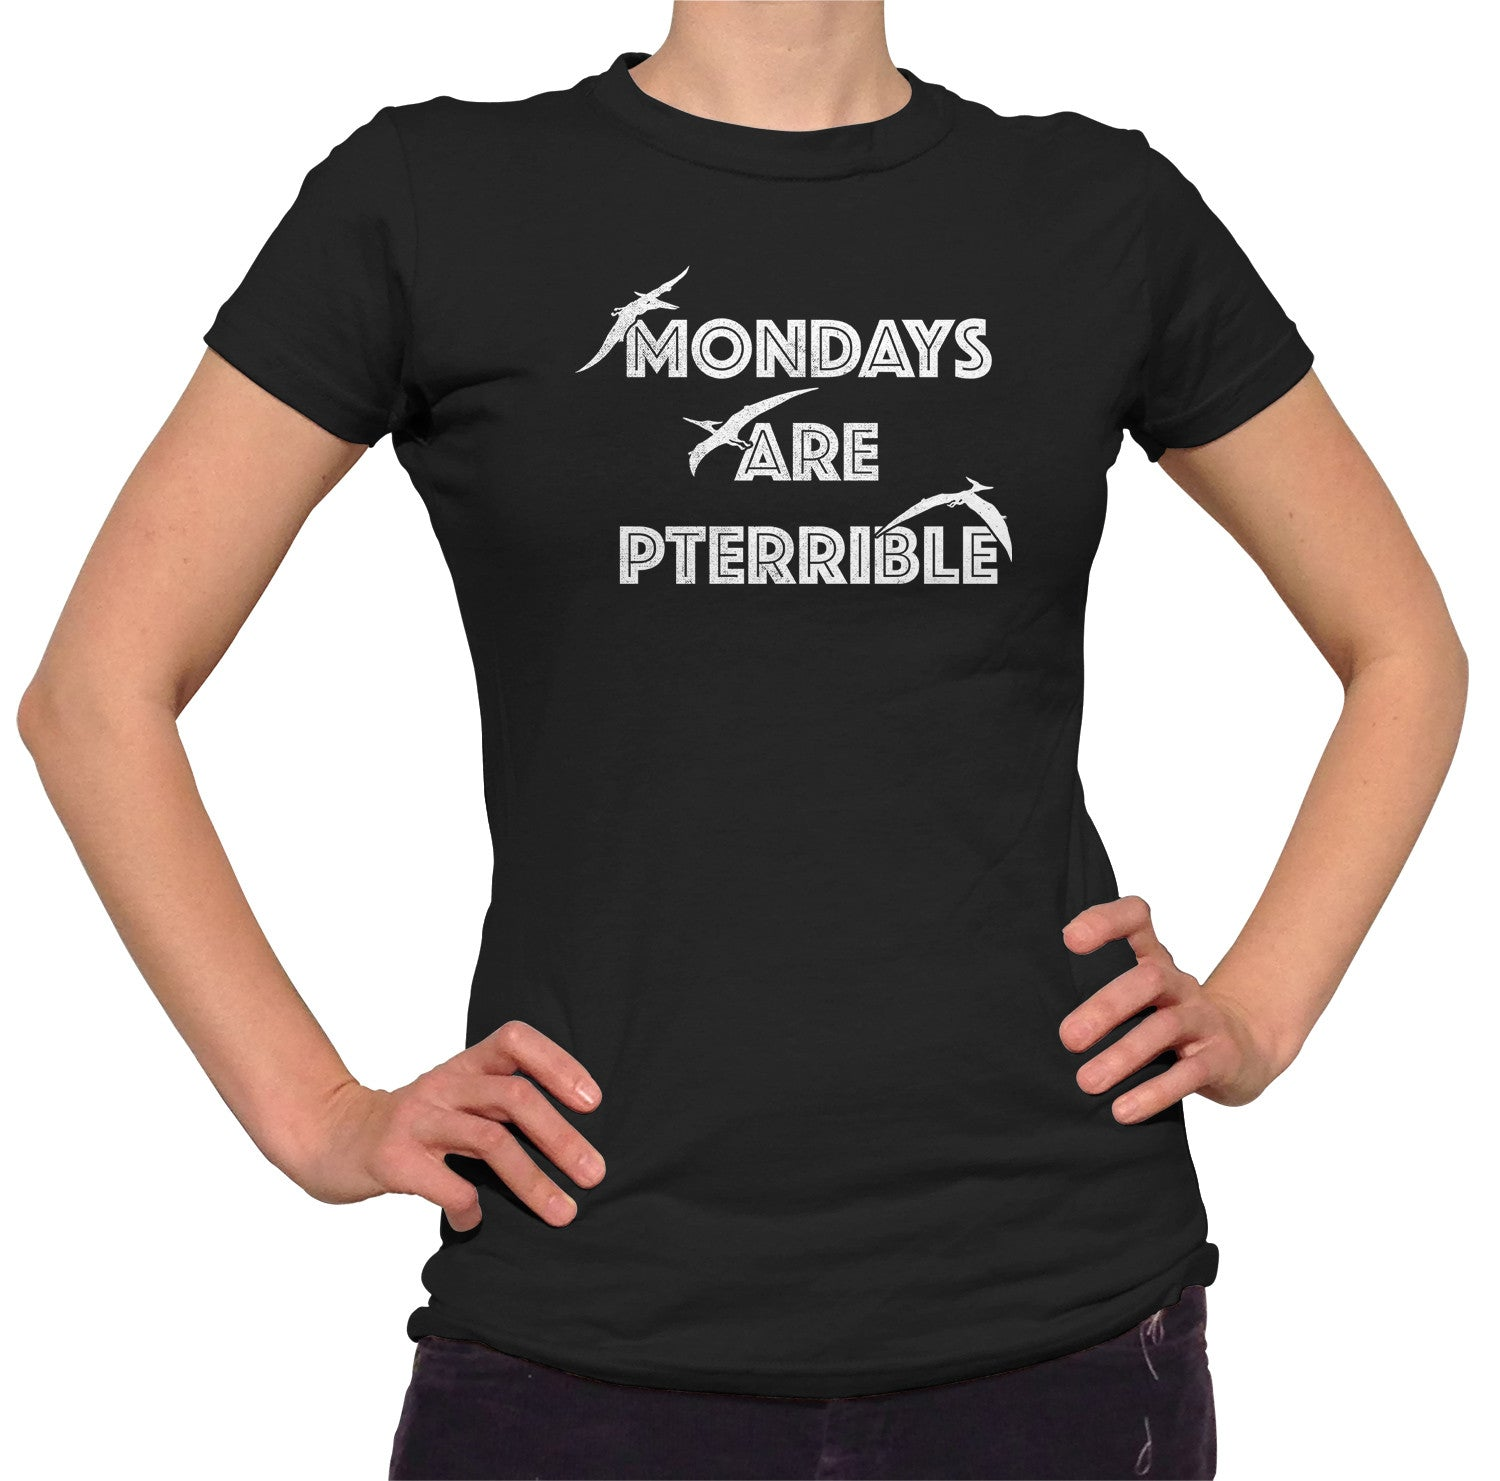 Women's Mondays Are Pterrible T-Shirt - Funny Dinosaur Shirt